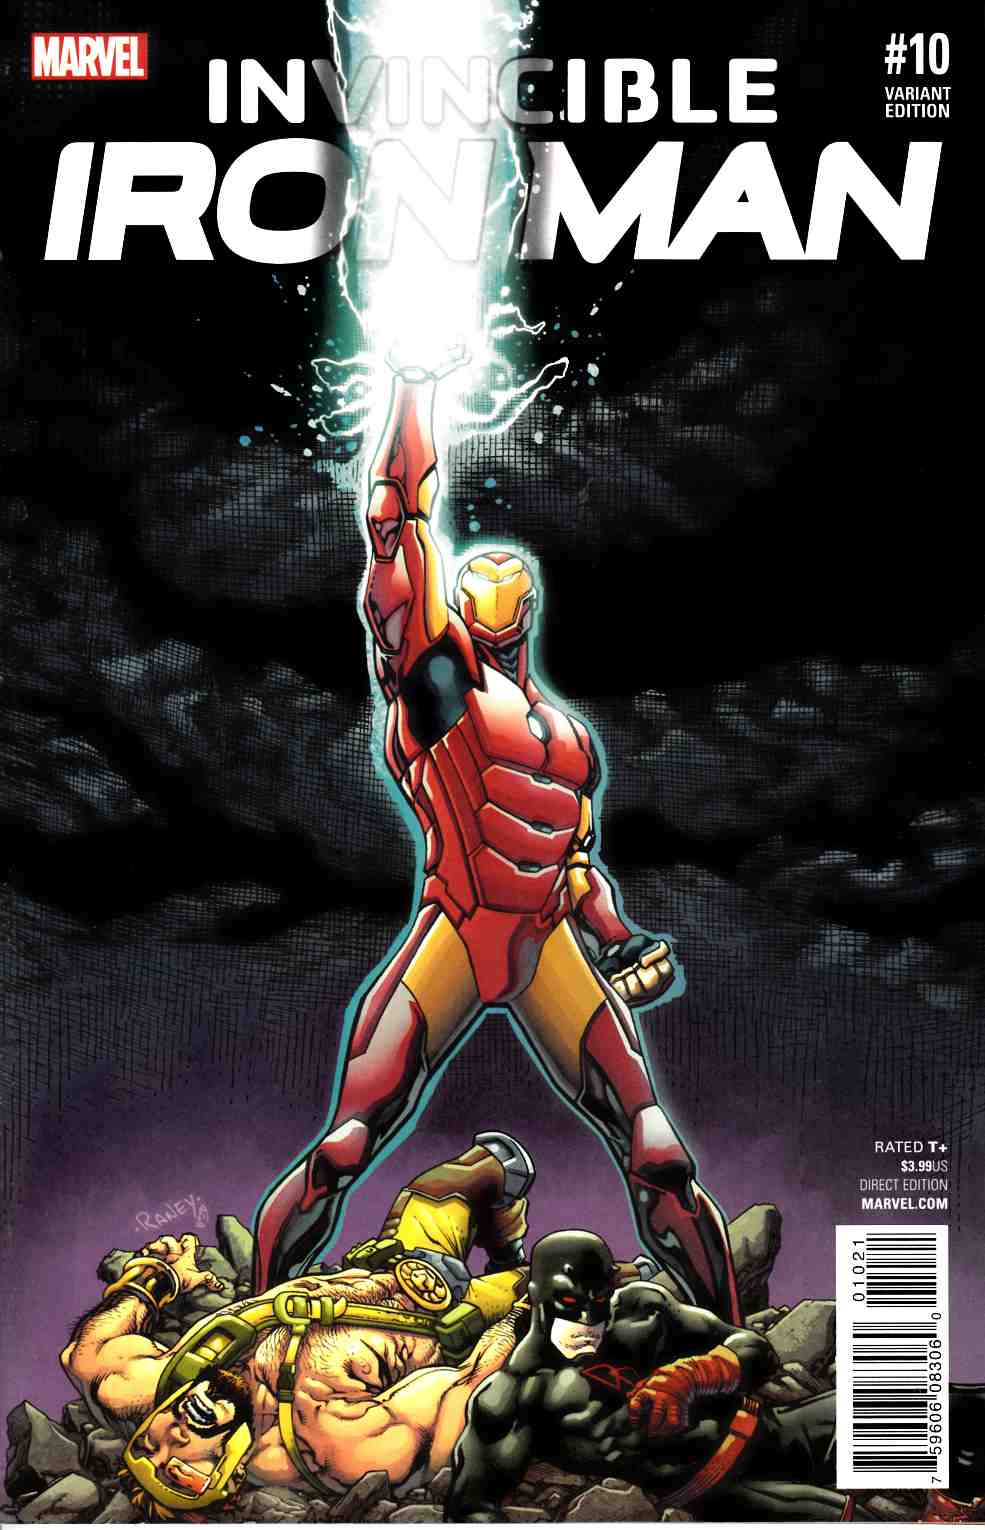 Invincible Iron Man #10 CW Reenactment Variant Cover [Marvel Comic] LARGE